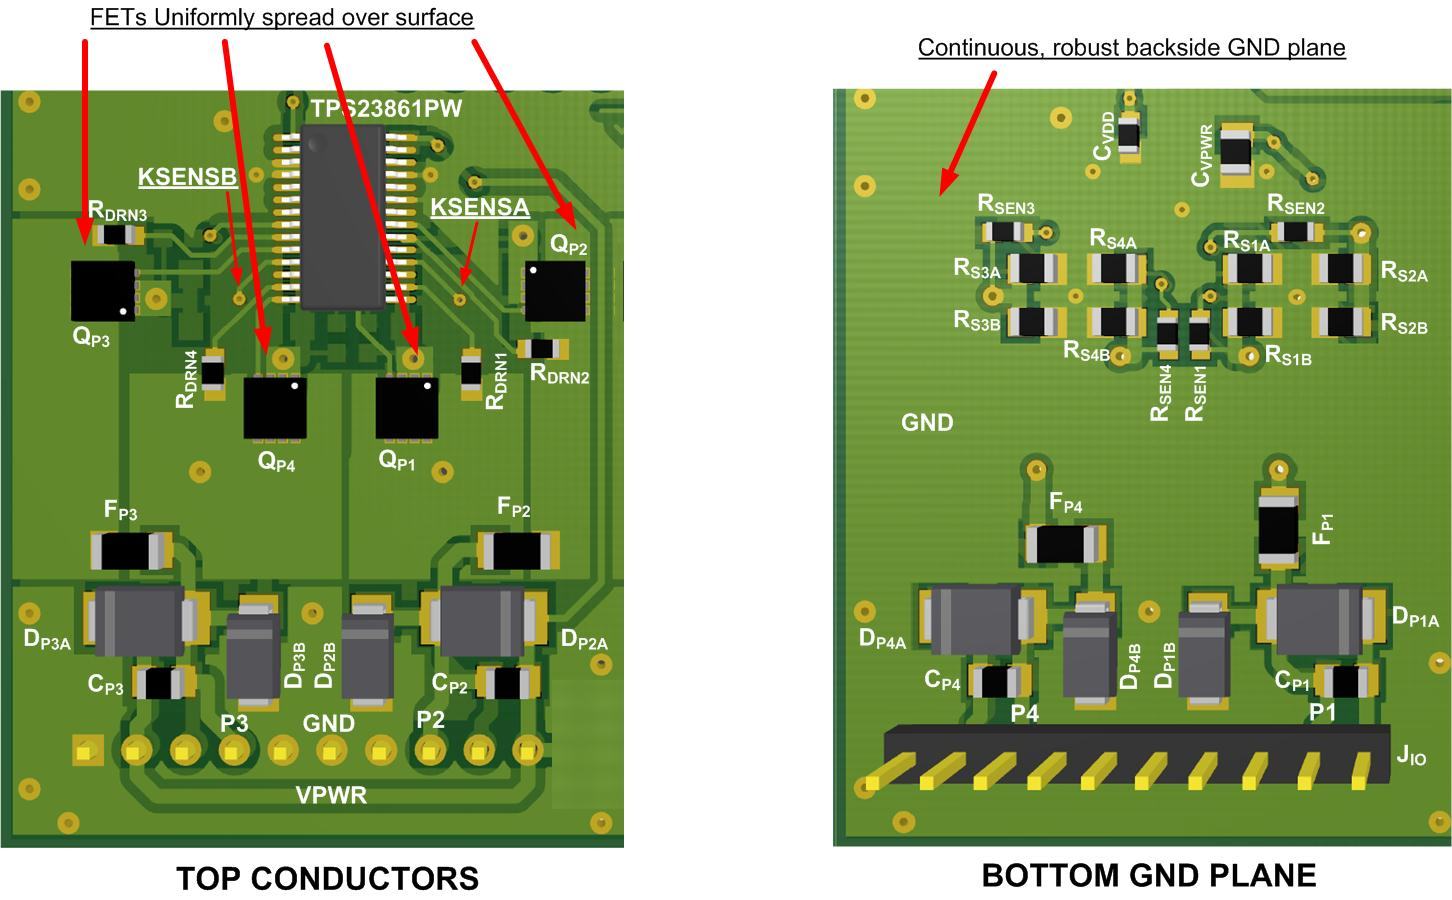 ti grounding system Staying well grounded by hank zumbahlen download pdf grounding is undoubtedly one of the most difficult subjects in system design while the basic concepts are relatively simple, implementation is very involved.